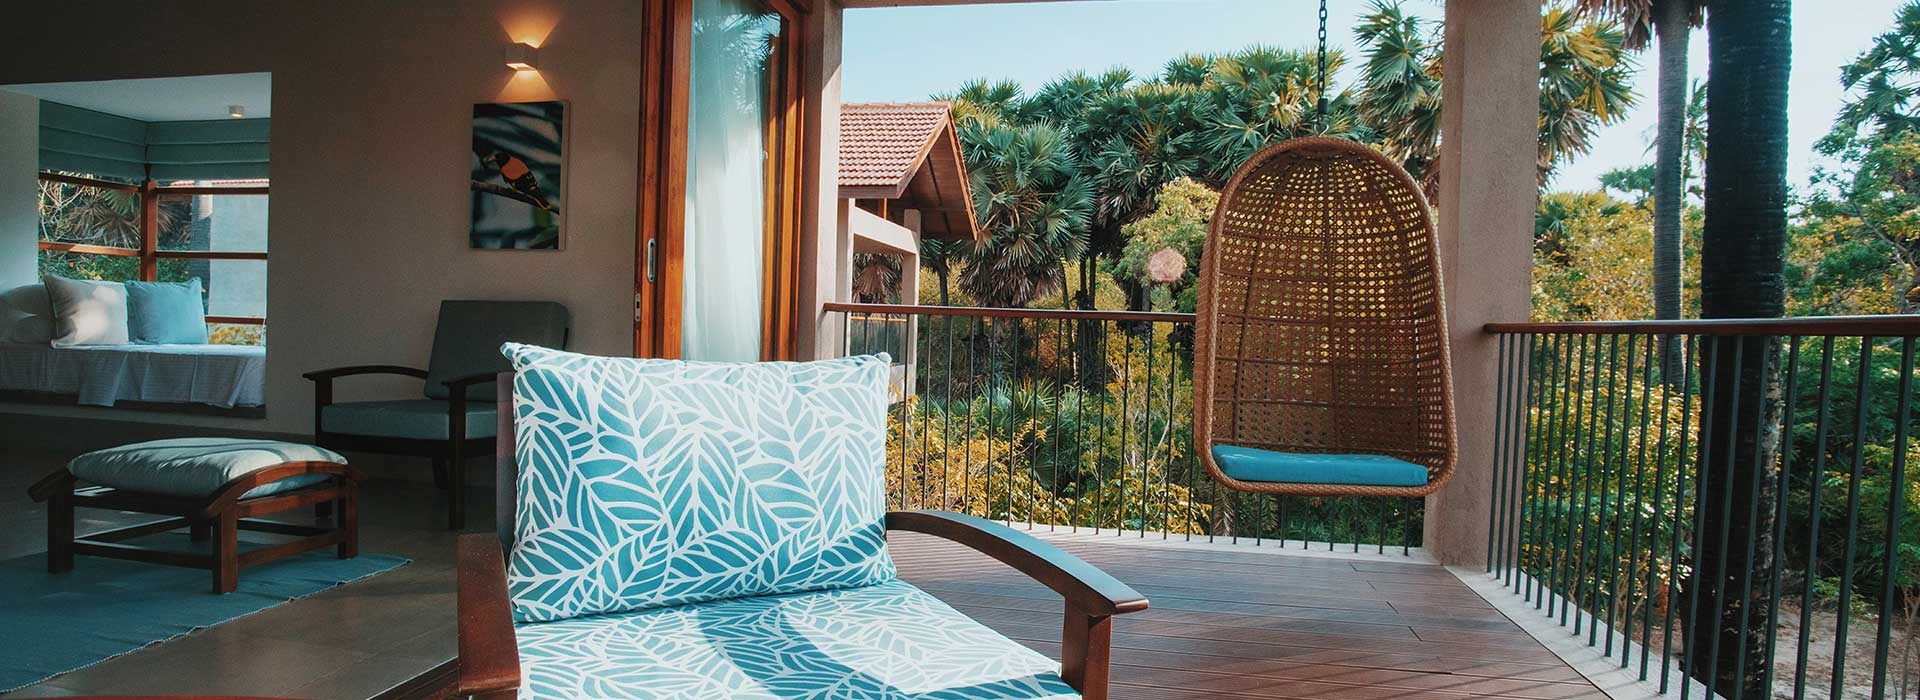 Private Deck of a Double Room at Palmyrah House Mannar